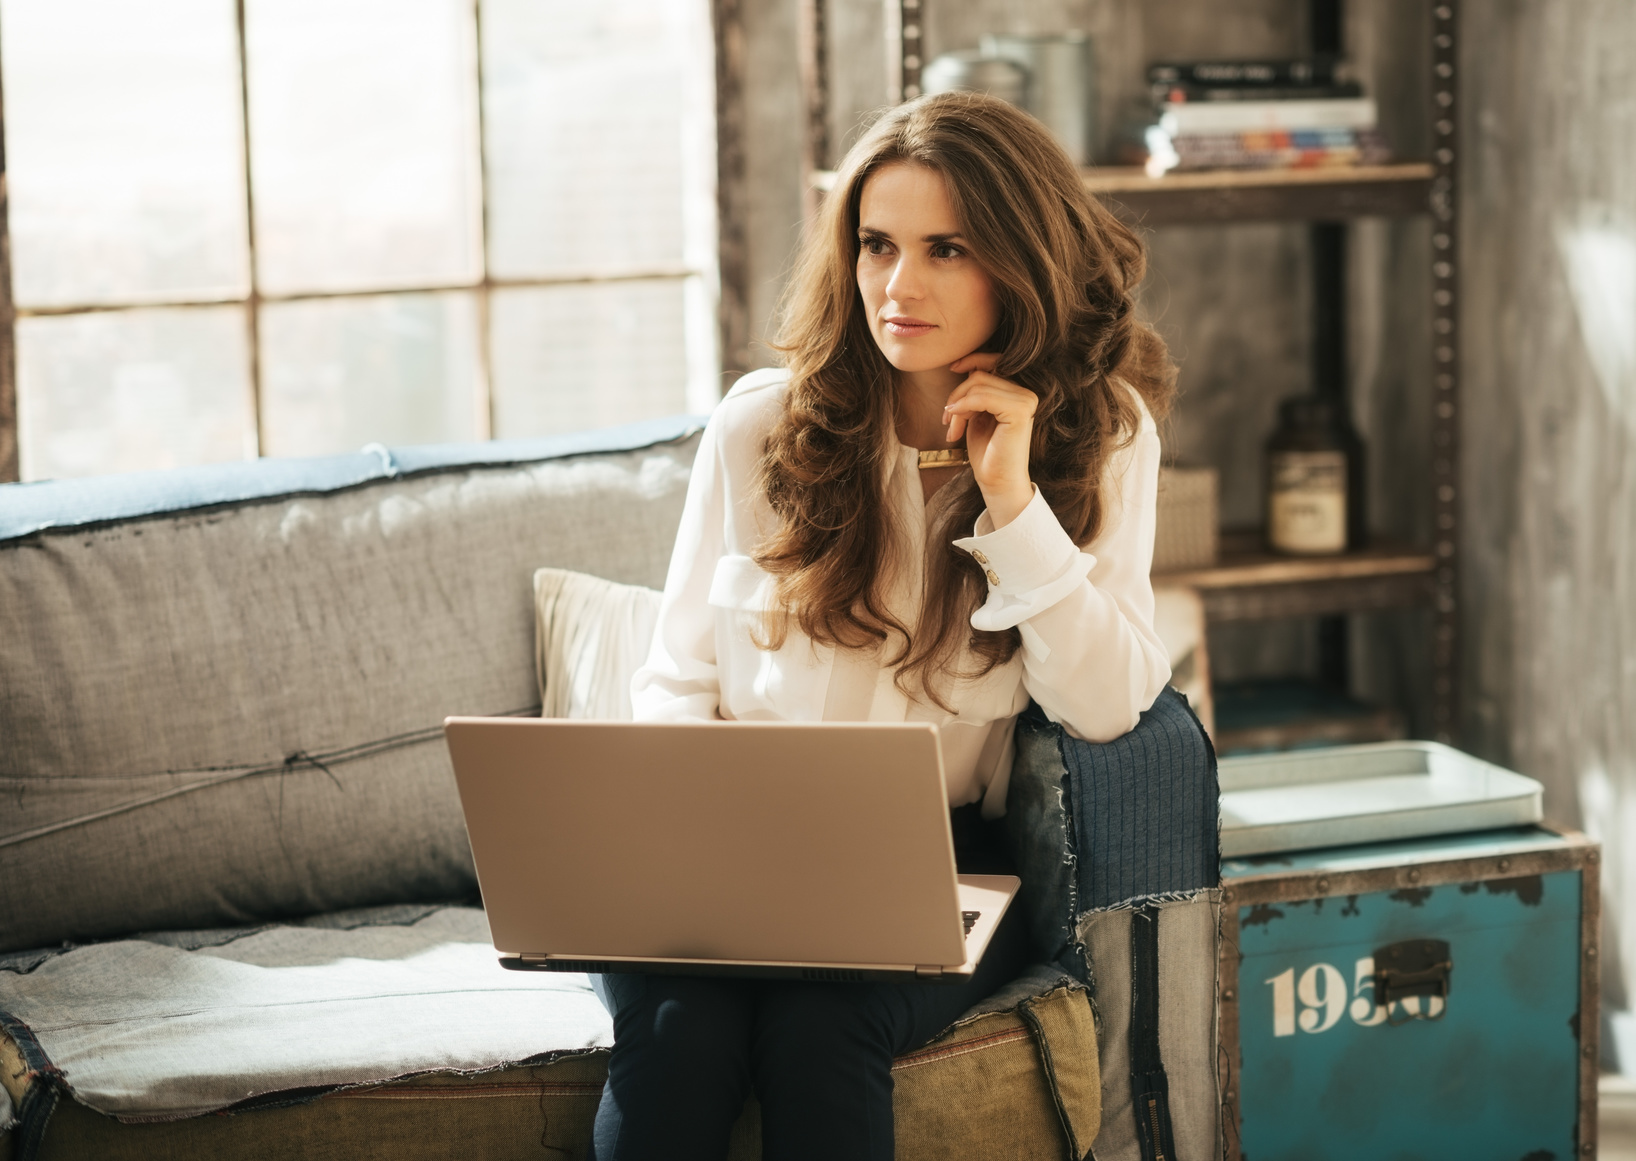 How To Get Paid For Blogging About Interior Design